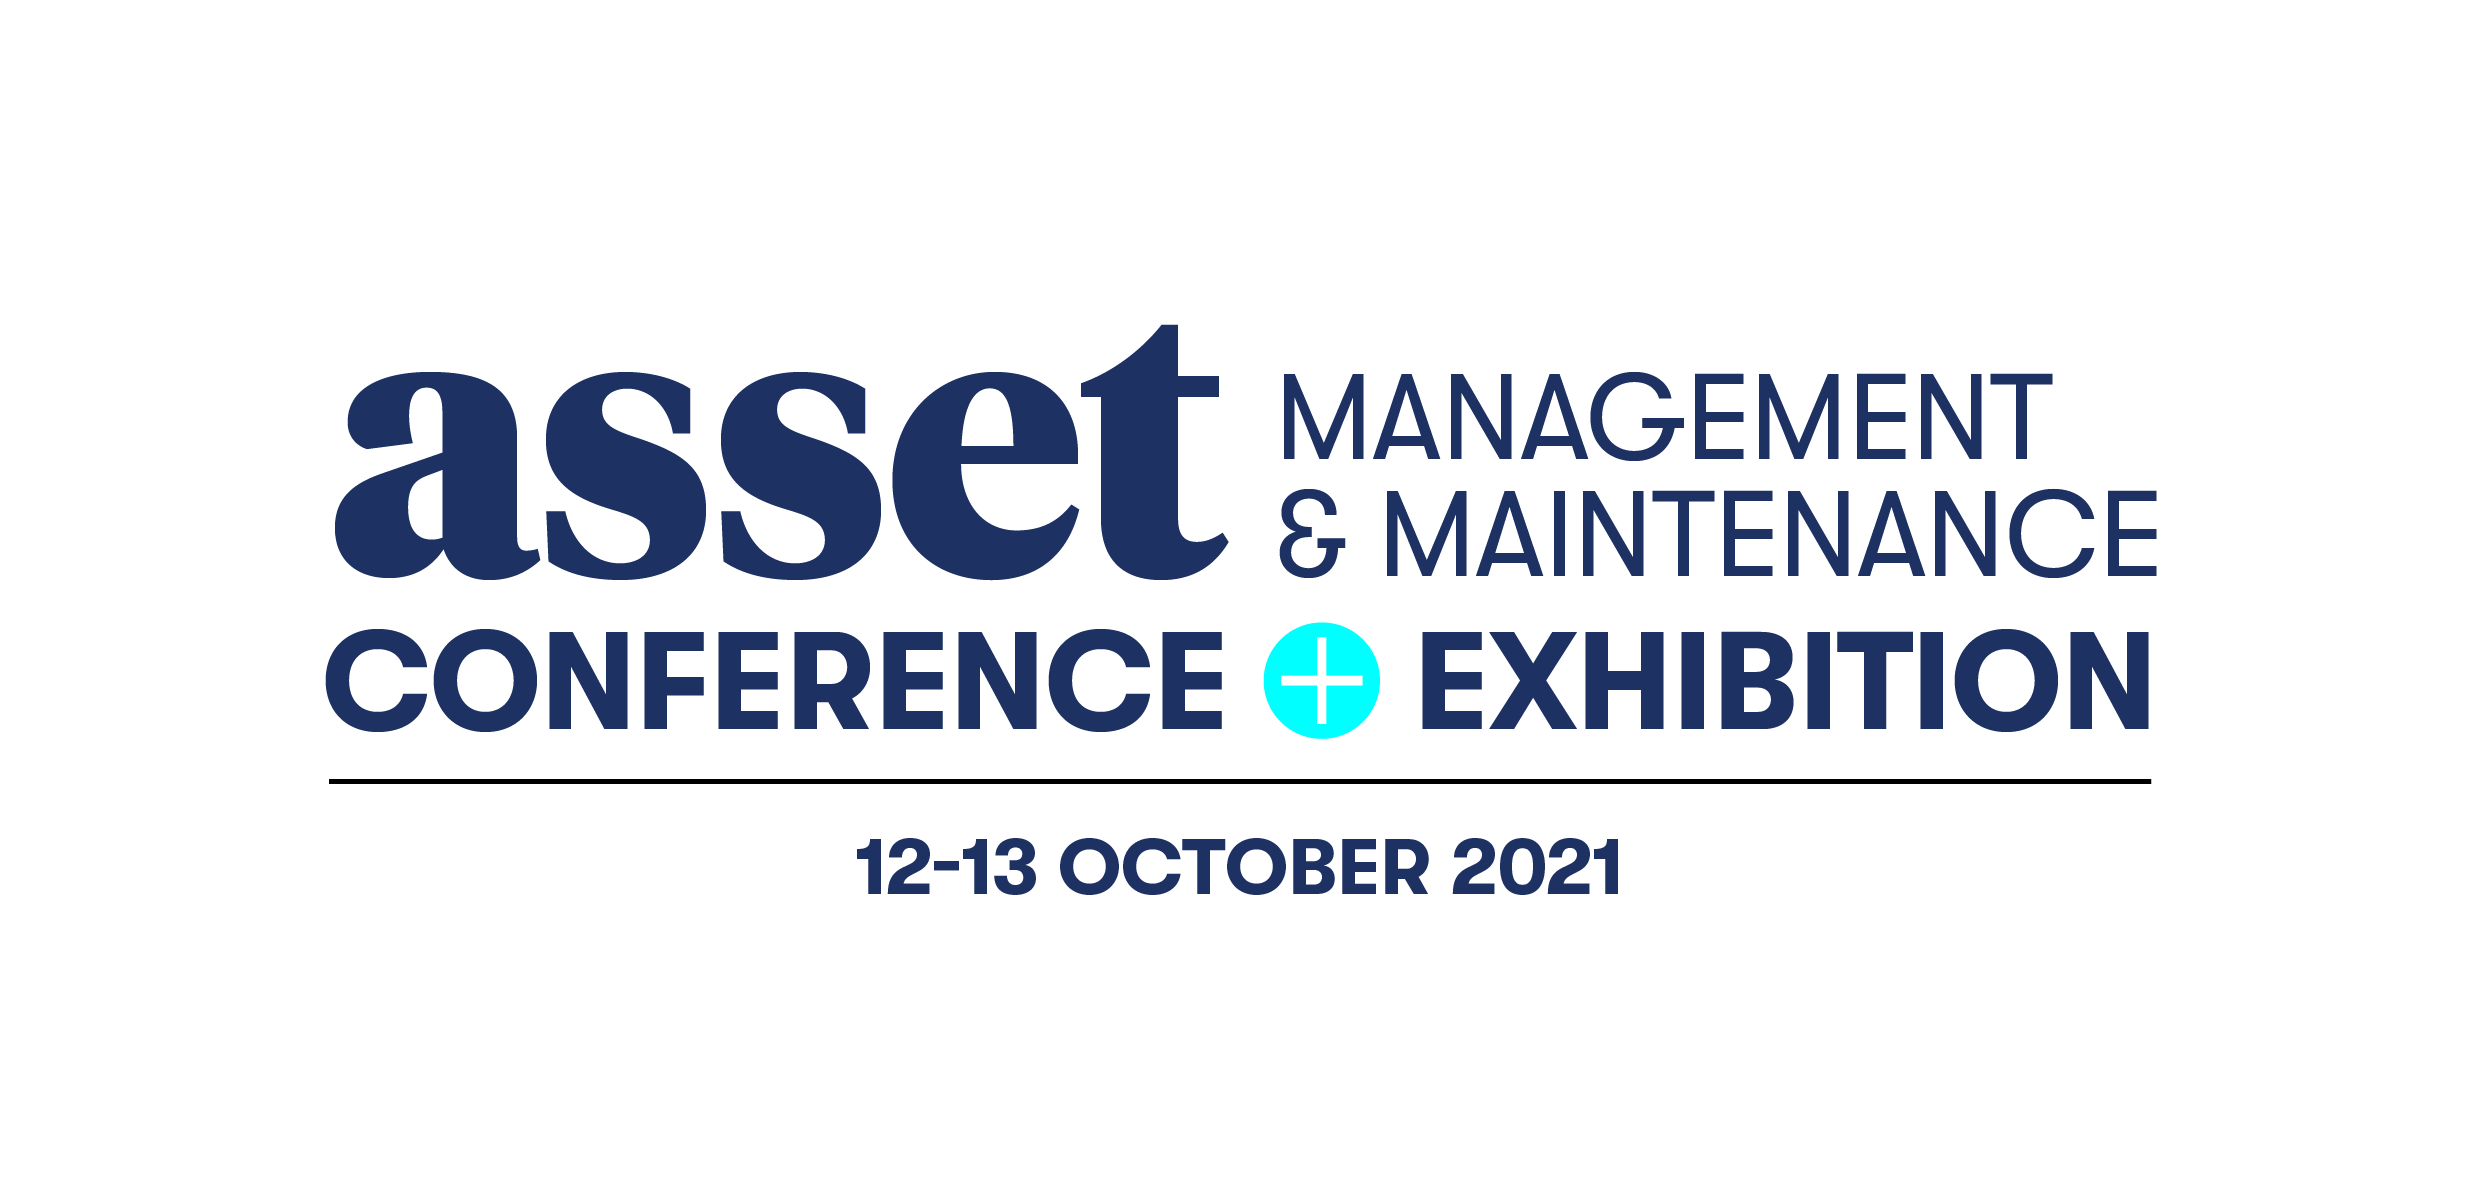 Asset Management and Maintenance Conference and Exhibition 2021